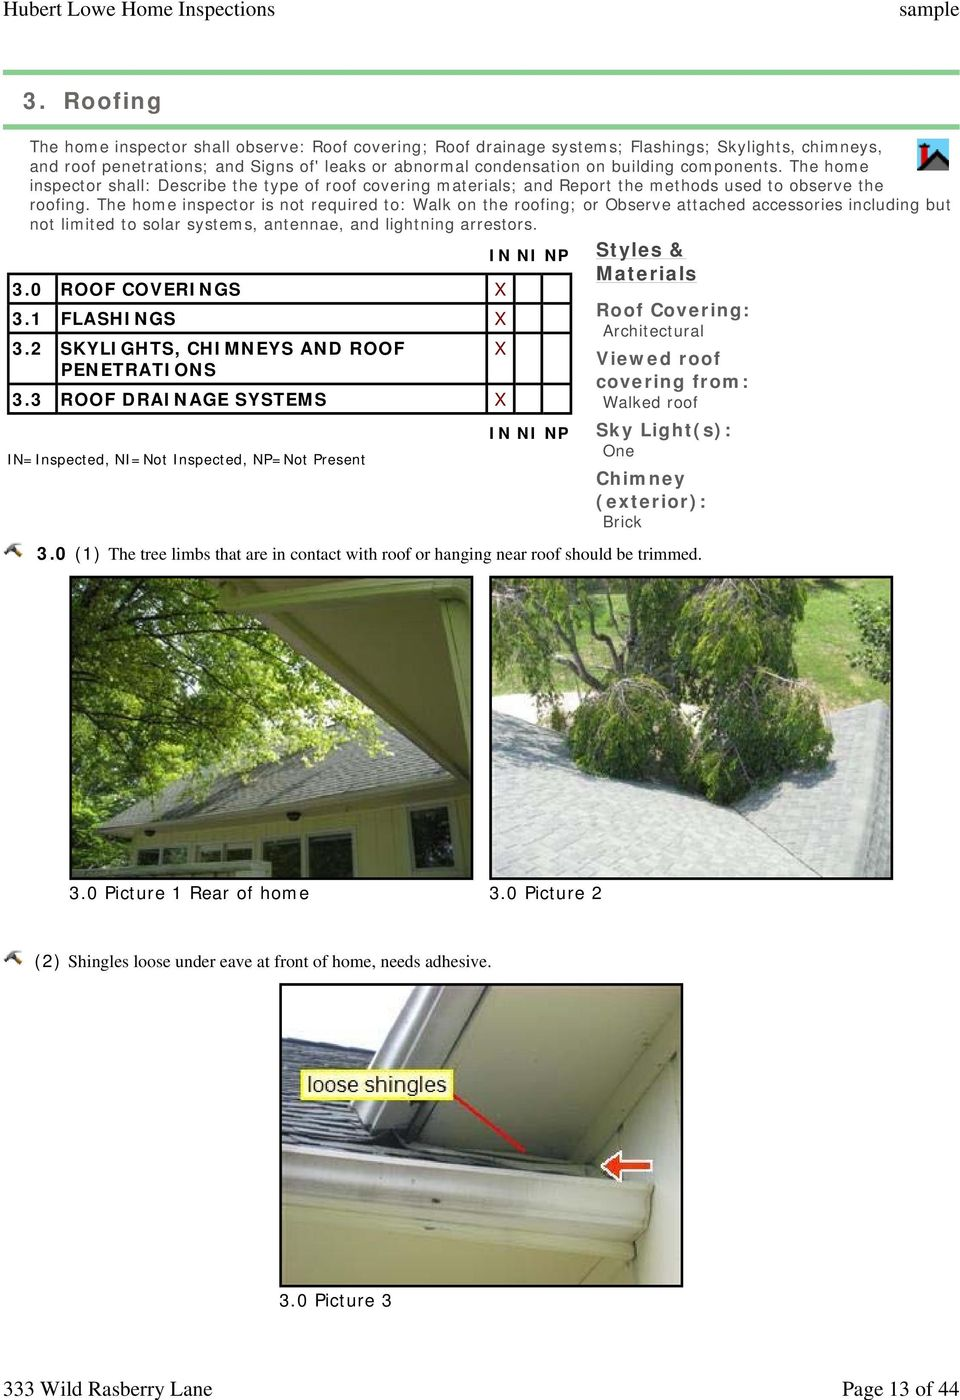 components. The home inspector shall: Describe the type of roof covering materials; and Report the methods used to observe the roofing.